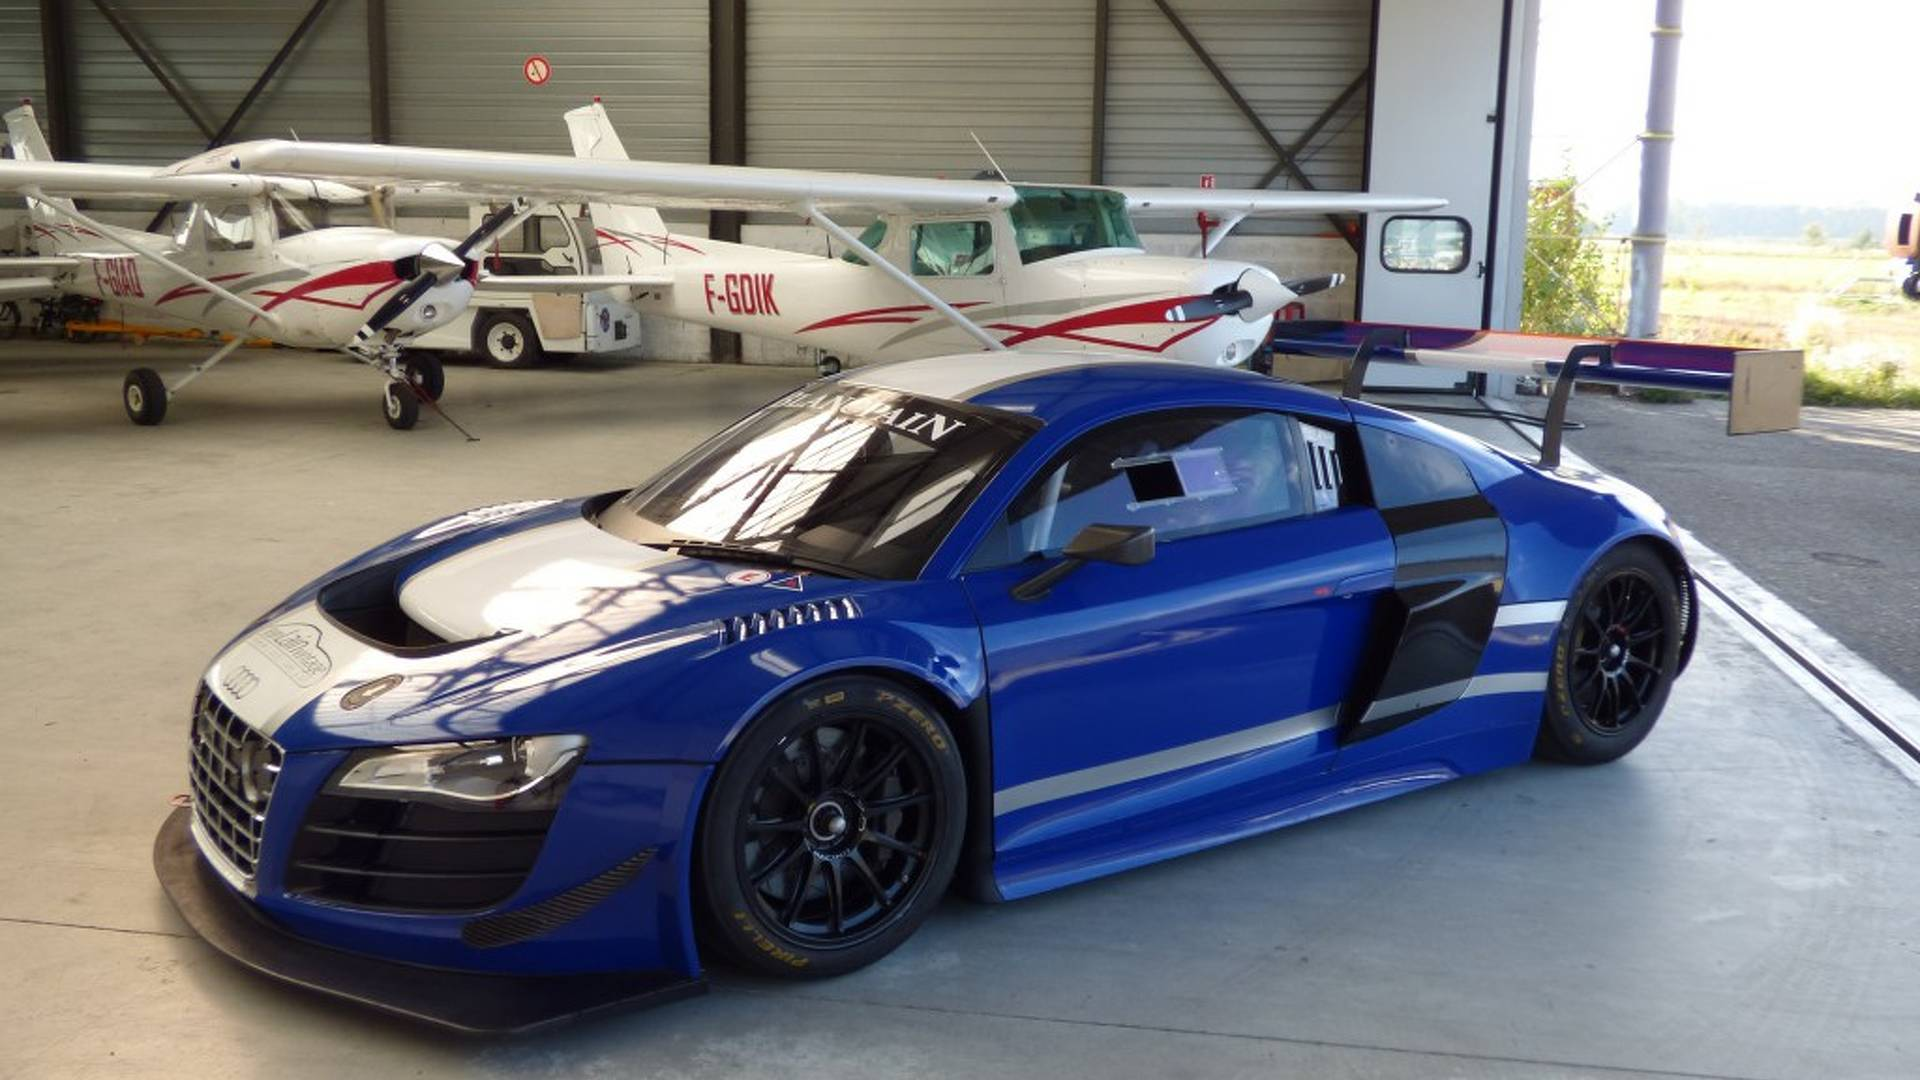 Audi R Race Car With Solid Racing Pedigree Up For Sale - Audi r8 race car for sale